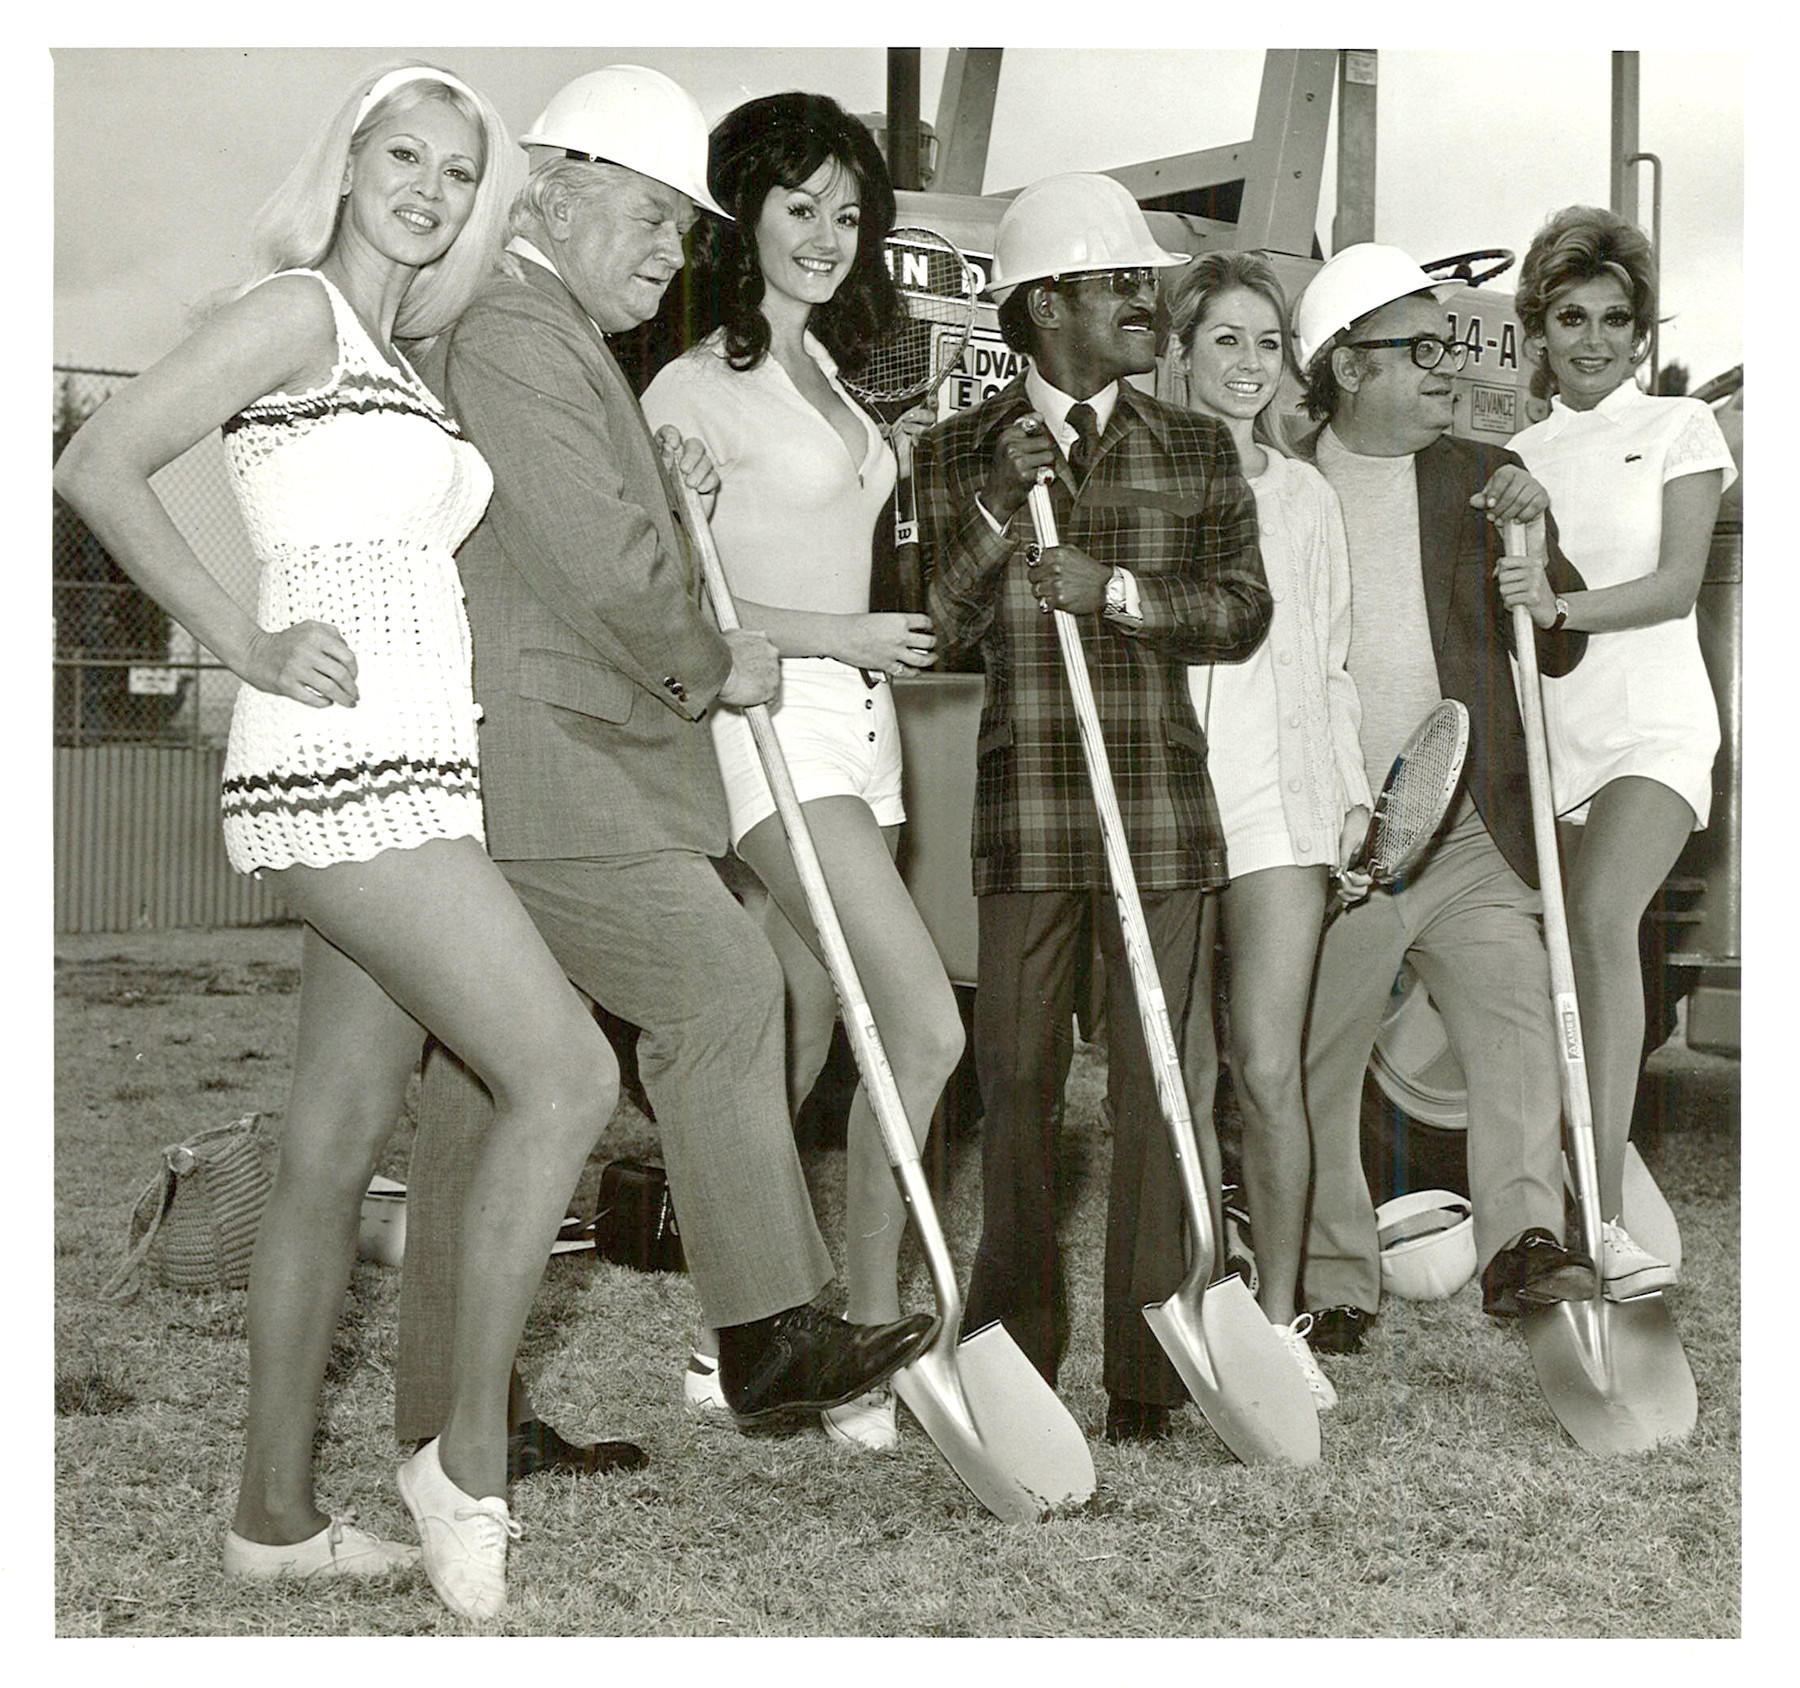 "Suzanne Kraus's mom ""Olivia'', shown here far right, was a Vegas showgirl who met author Mario Puzo, second from far right, and Sammy Davis Jr., center."